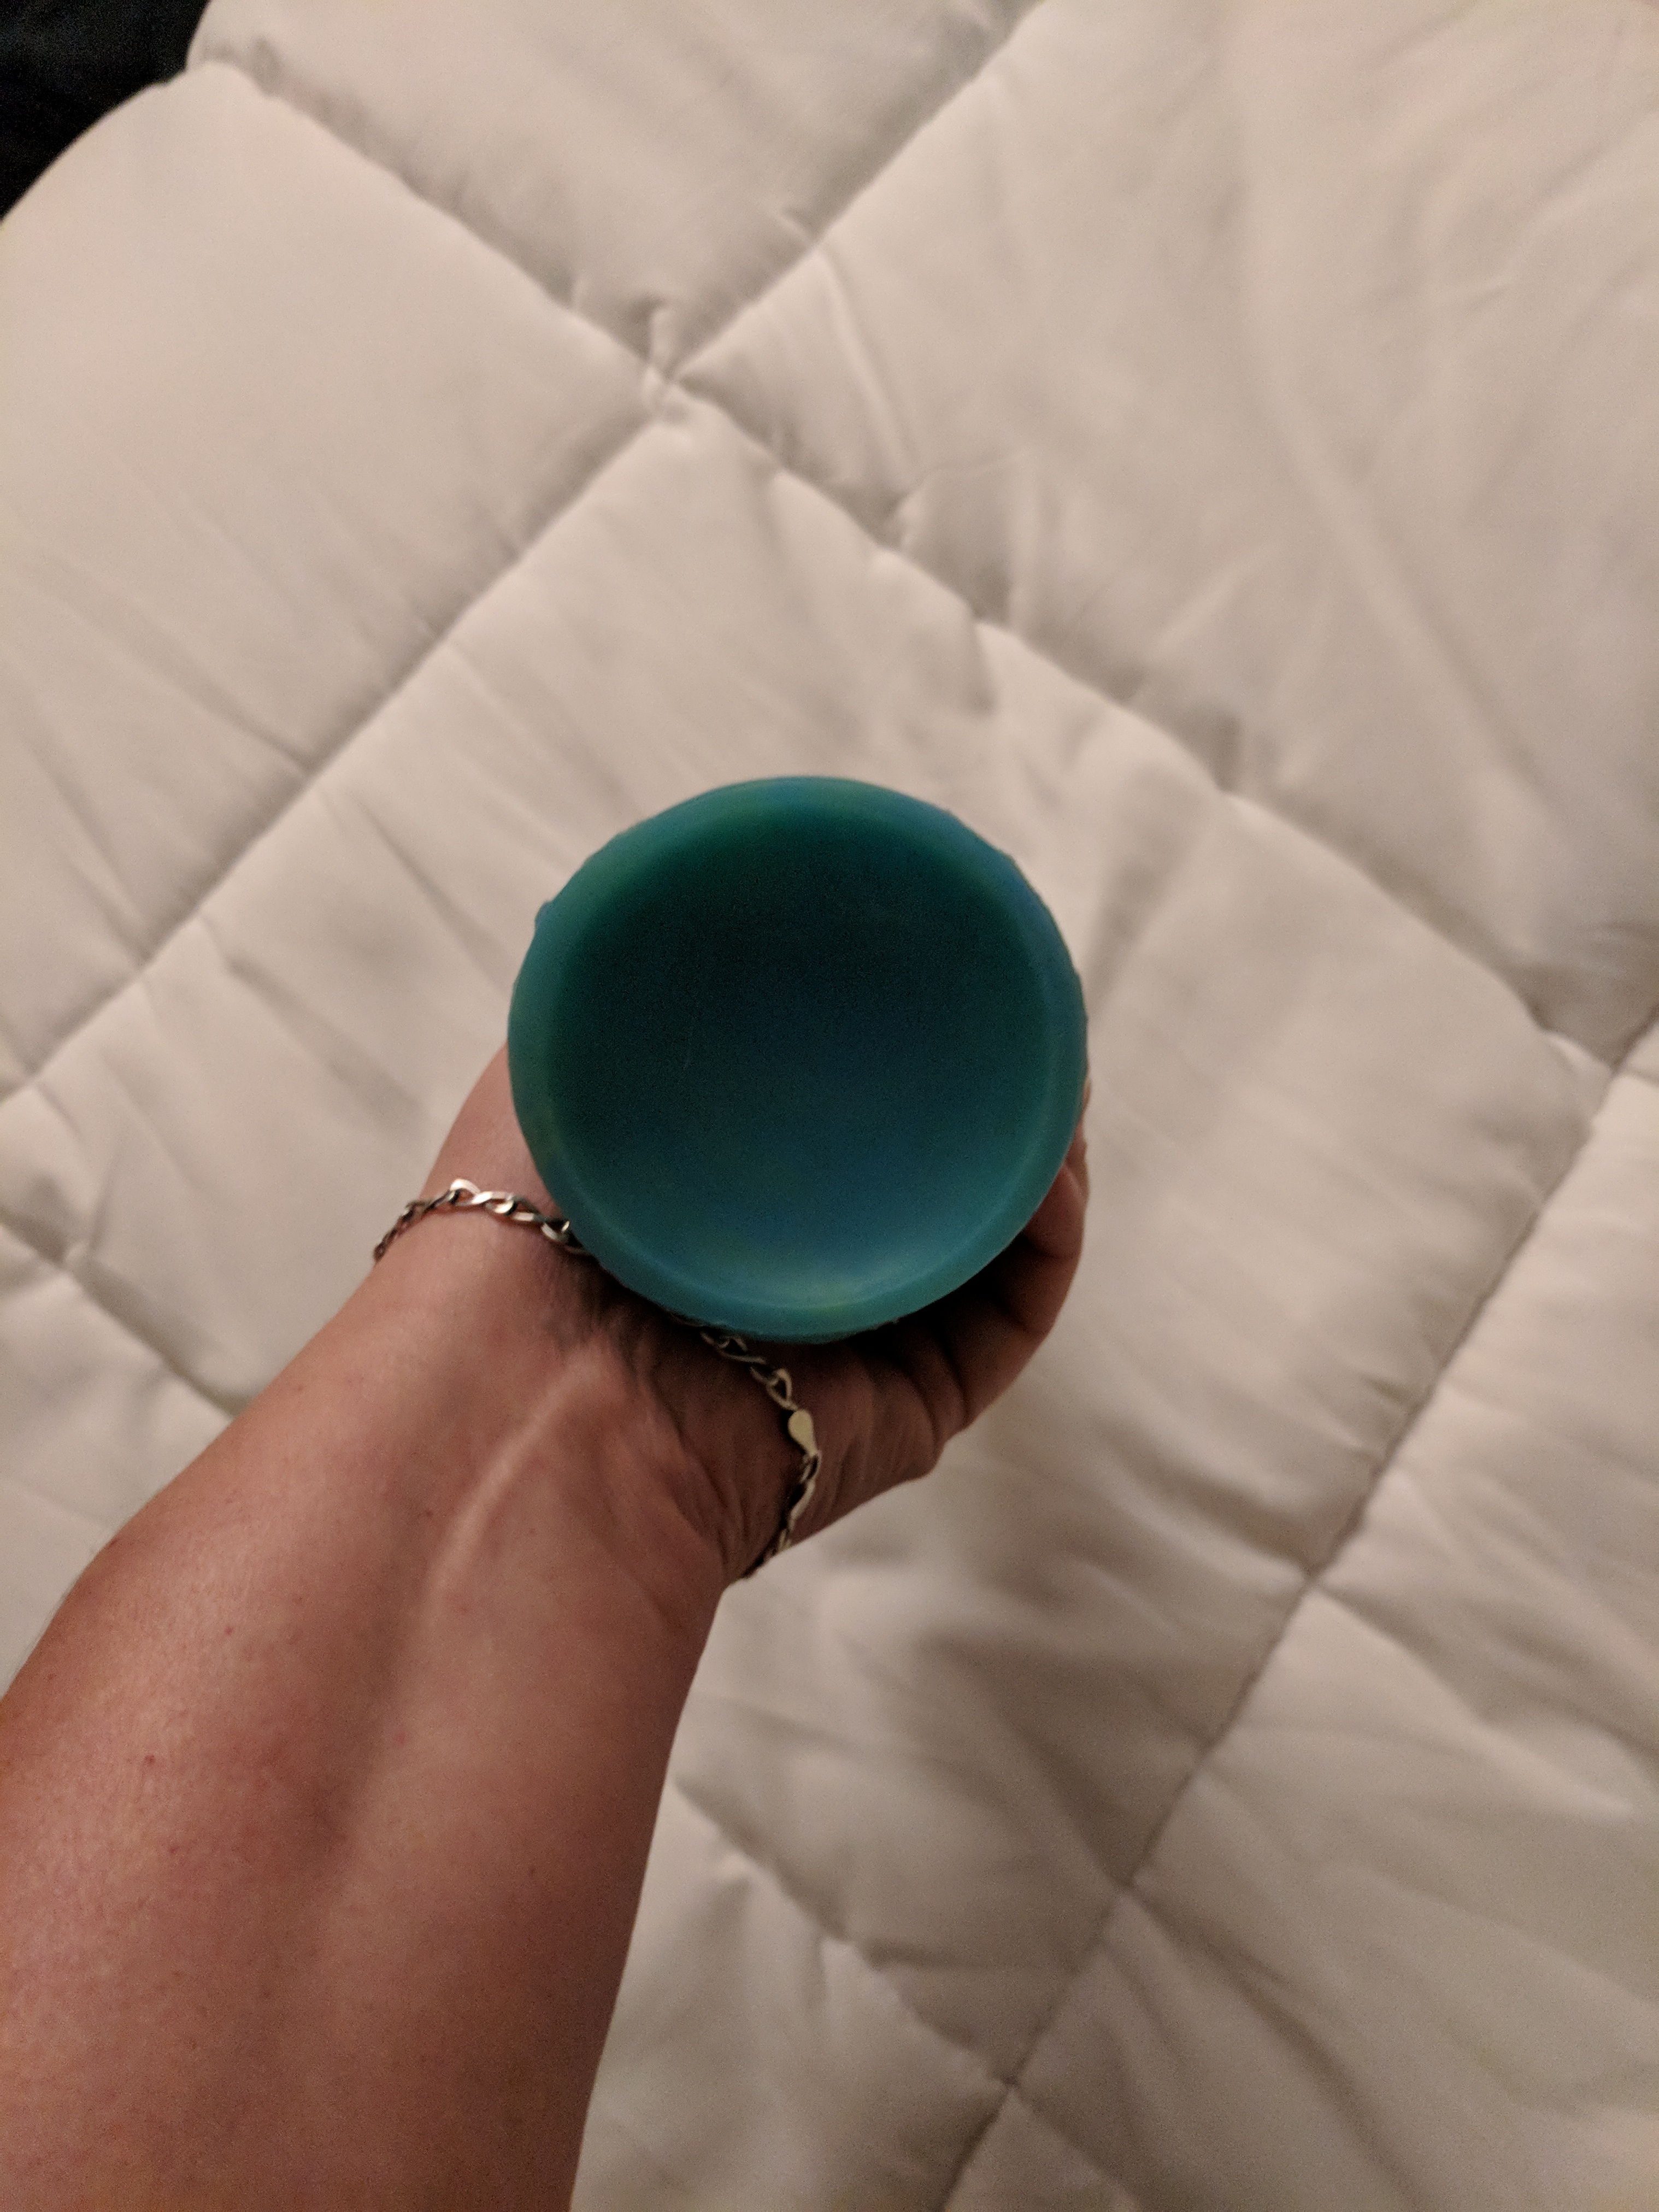 Bottom of toy, showing width and suction cup base